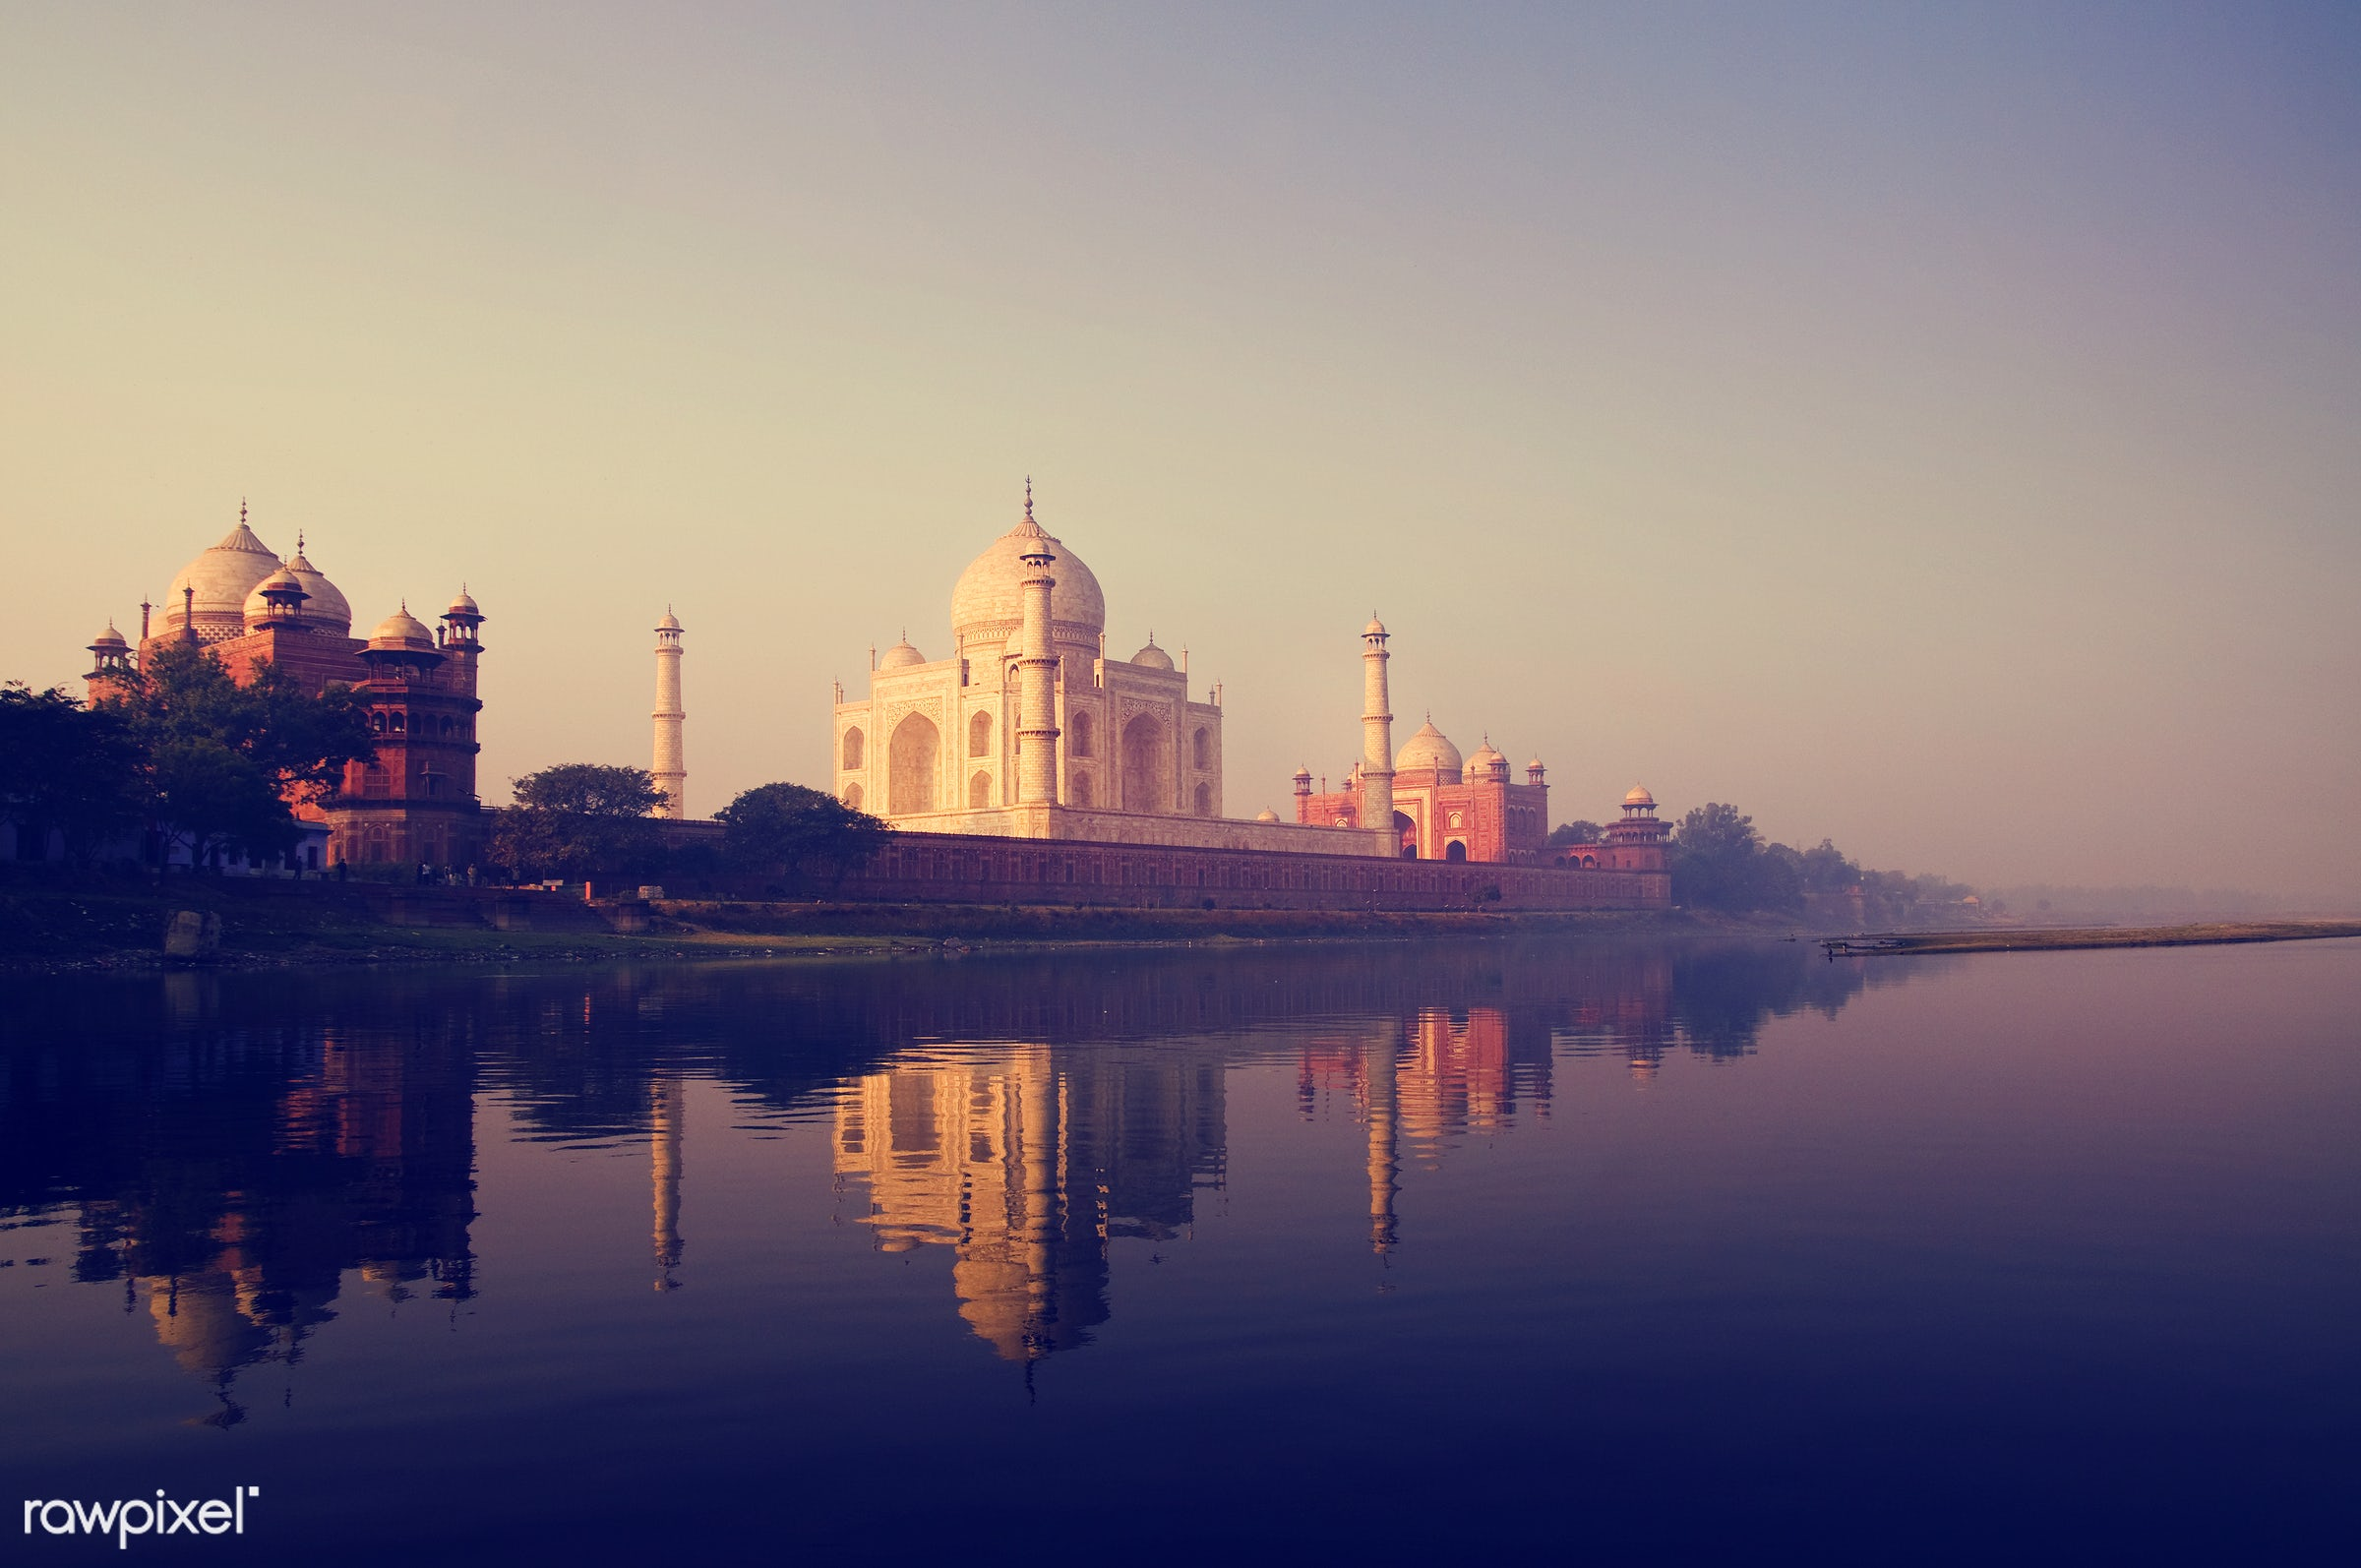 The Taj Mahal in Agra India - agra, famous place, islam, 7 wonders, architecture, architecture and buildings, asia, building...